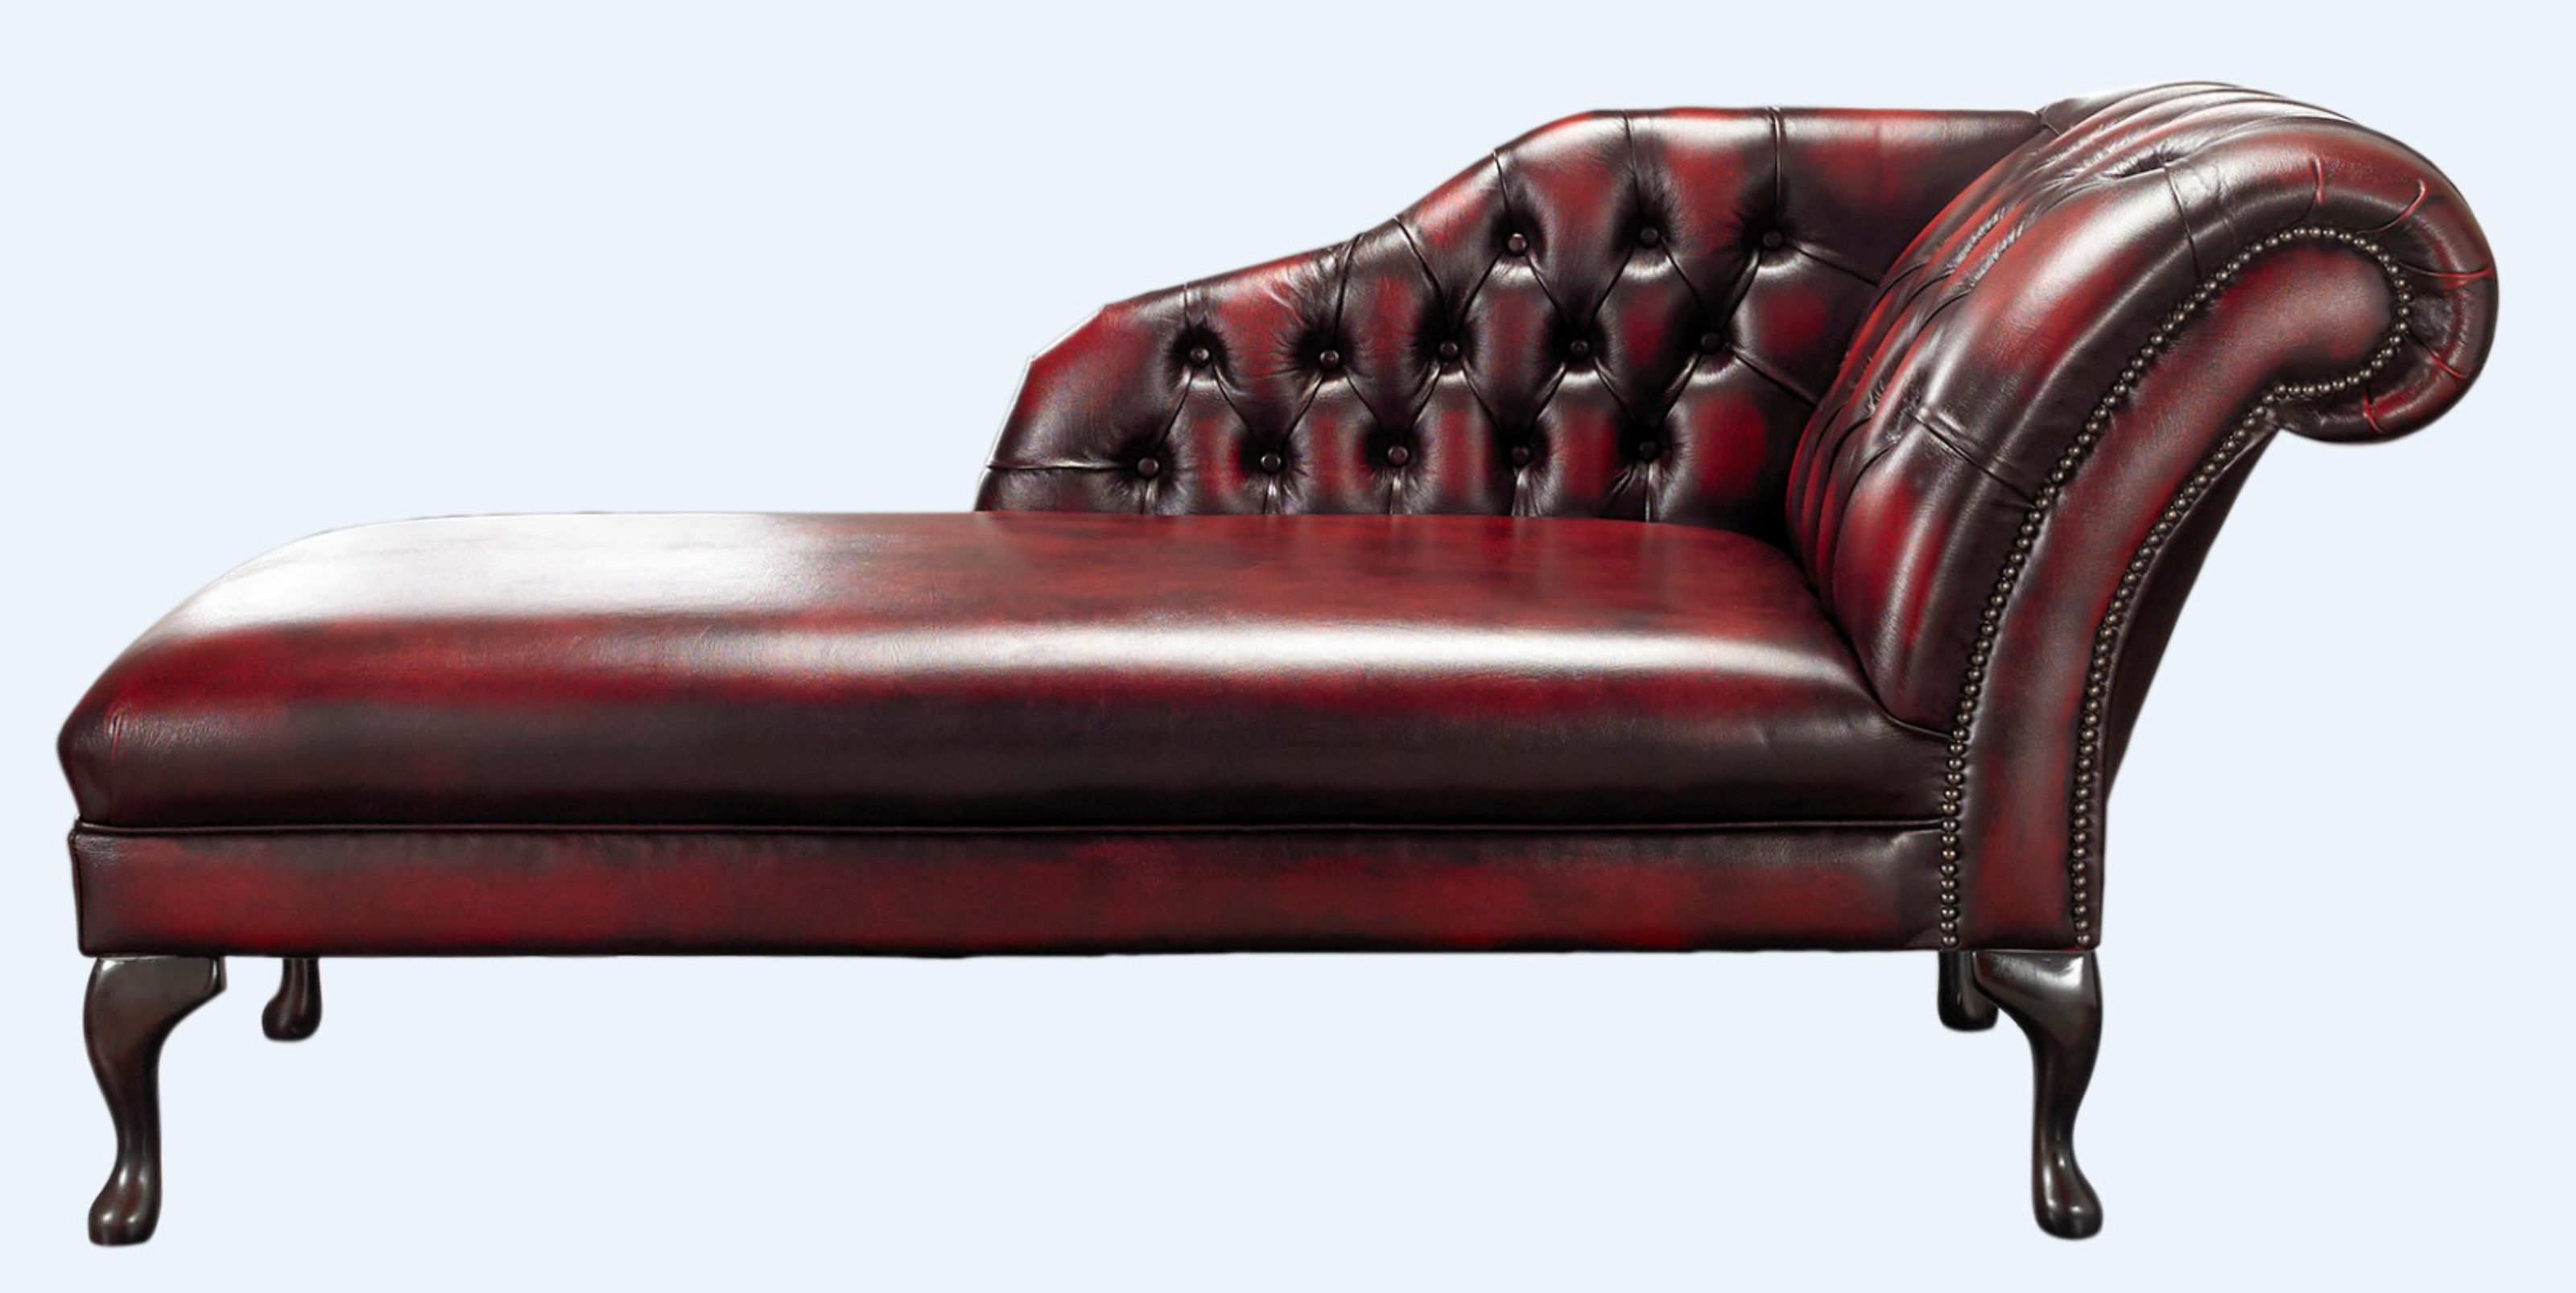 - Oxblood Chesterfield Chaise Lounge Day Bed